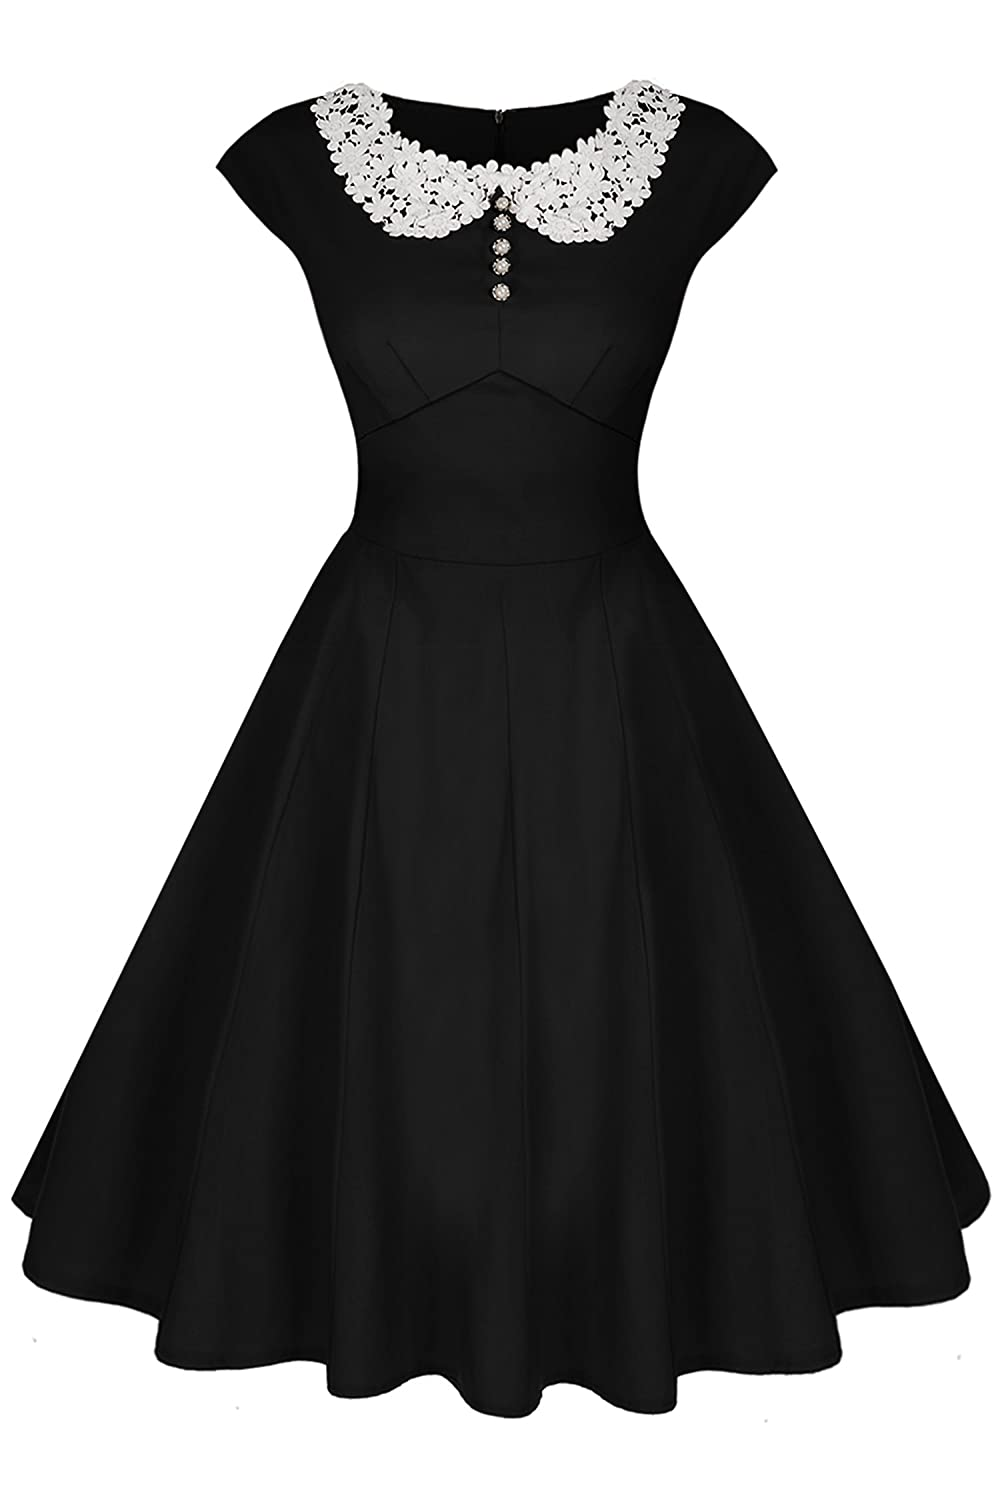 1940s Evening, Prom, Party, Cocktail Dresses & Ball Gowns Audrey Hepburn Style 1940s Rockabilly Evening Dress  AT vintagedancer.com